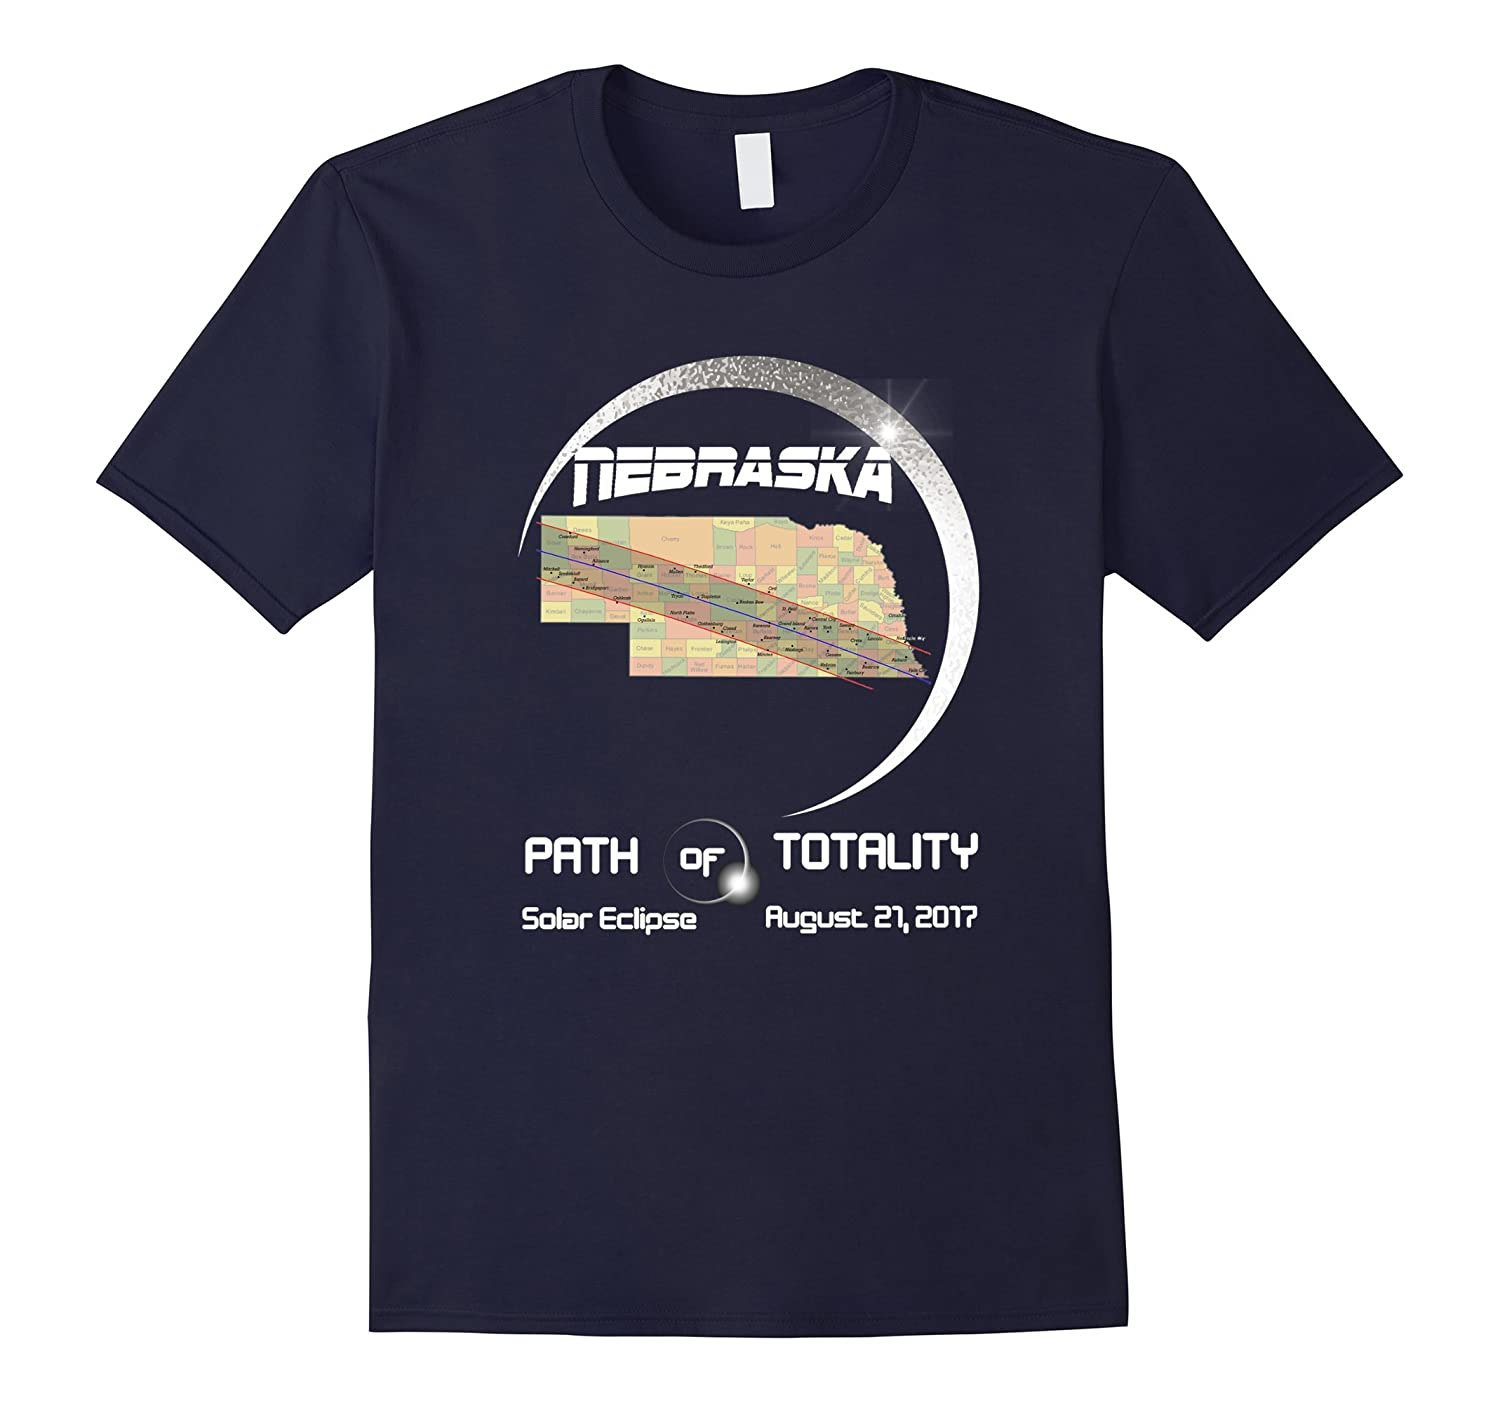 Nebraska path of totality solar eclipse T-Shirt-BN